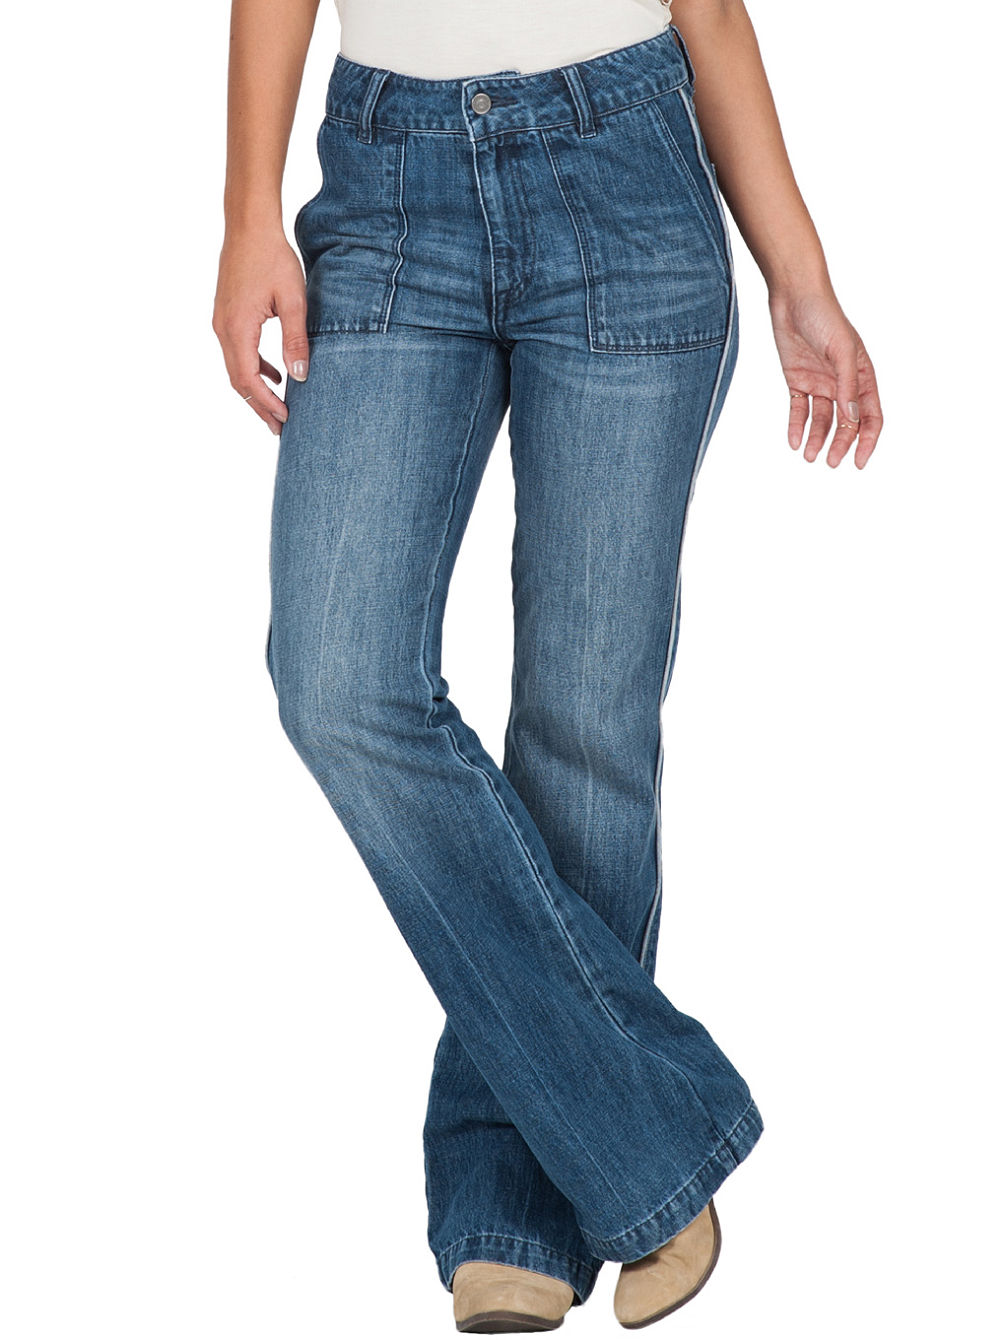 Find a great selection of flare and wide leg jeans for women at housraeg.gq Shop by rise, wash, waist size, color and more. Free shipping & returns.